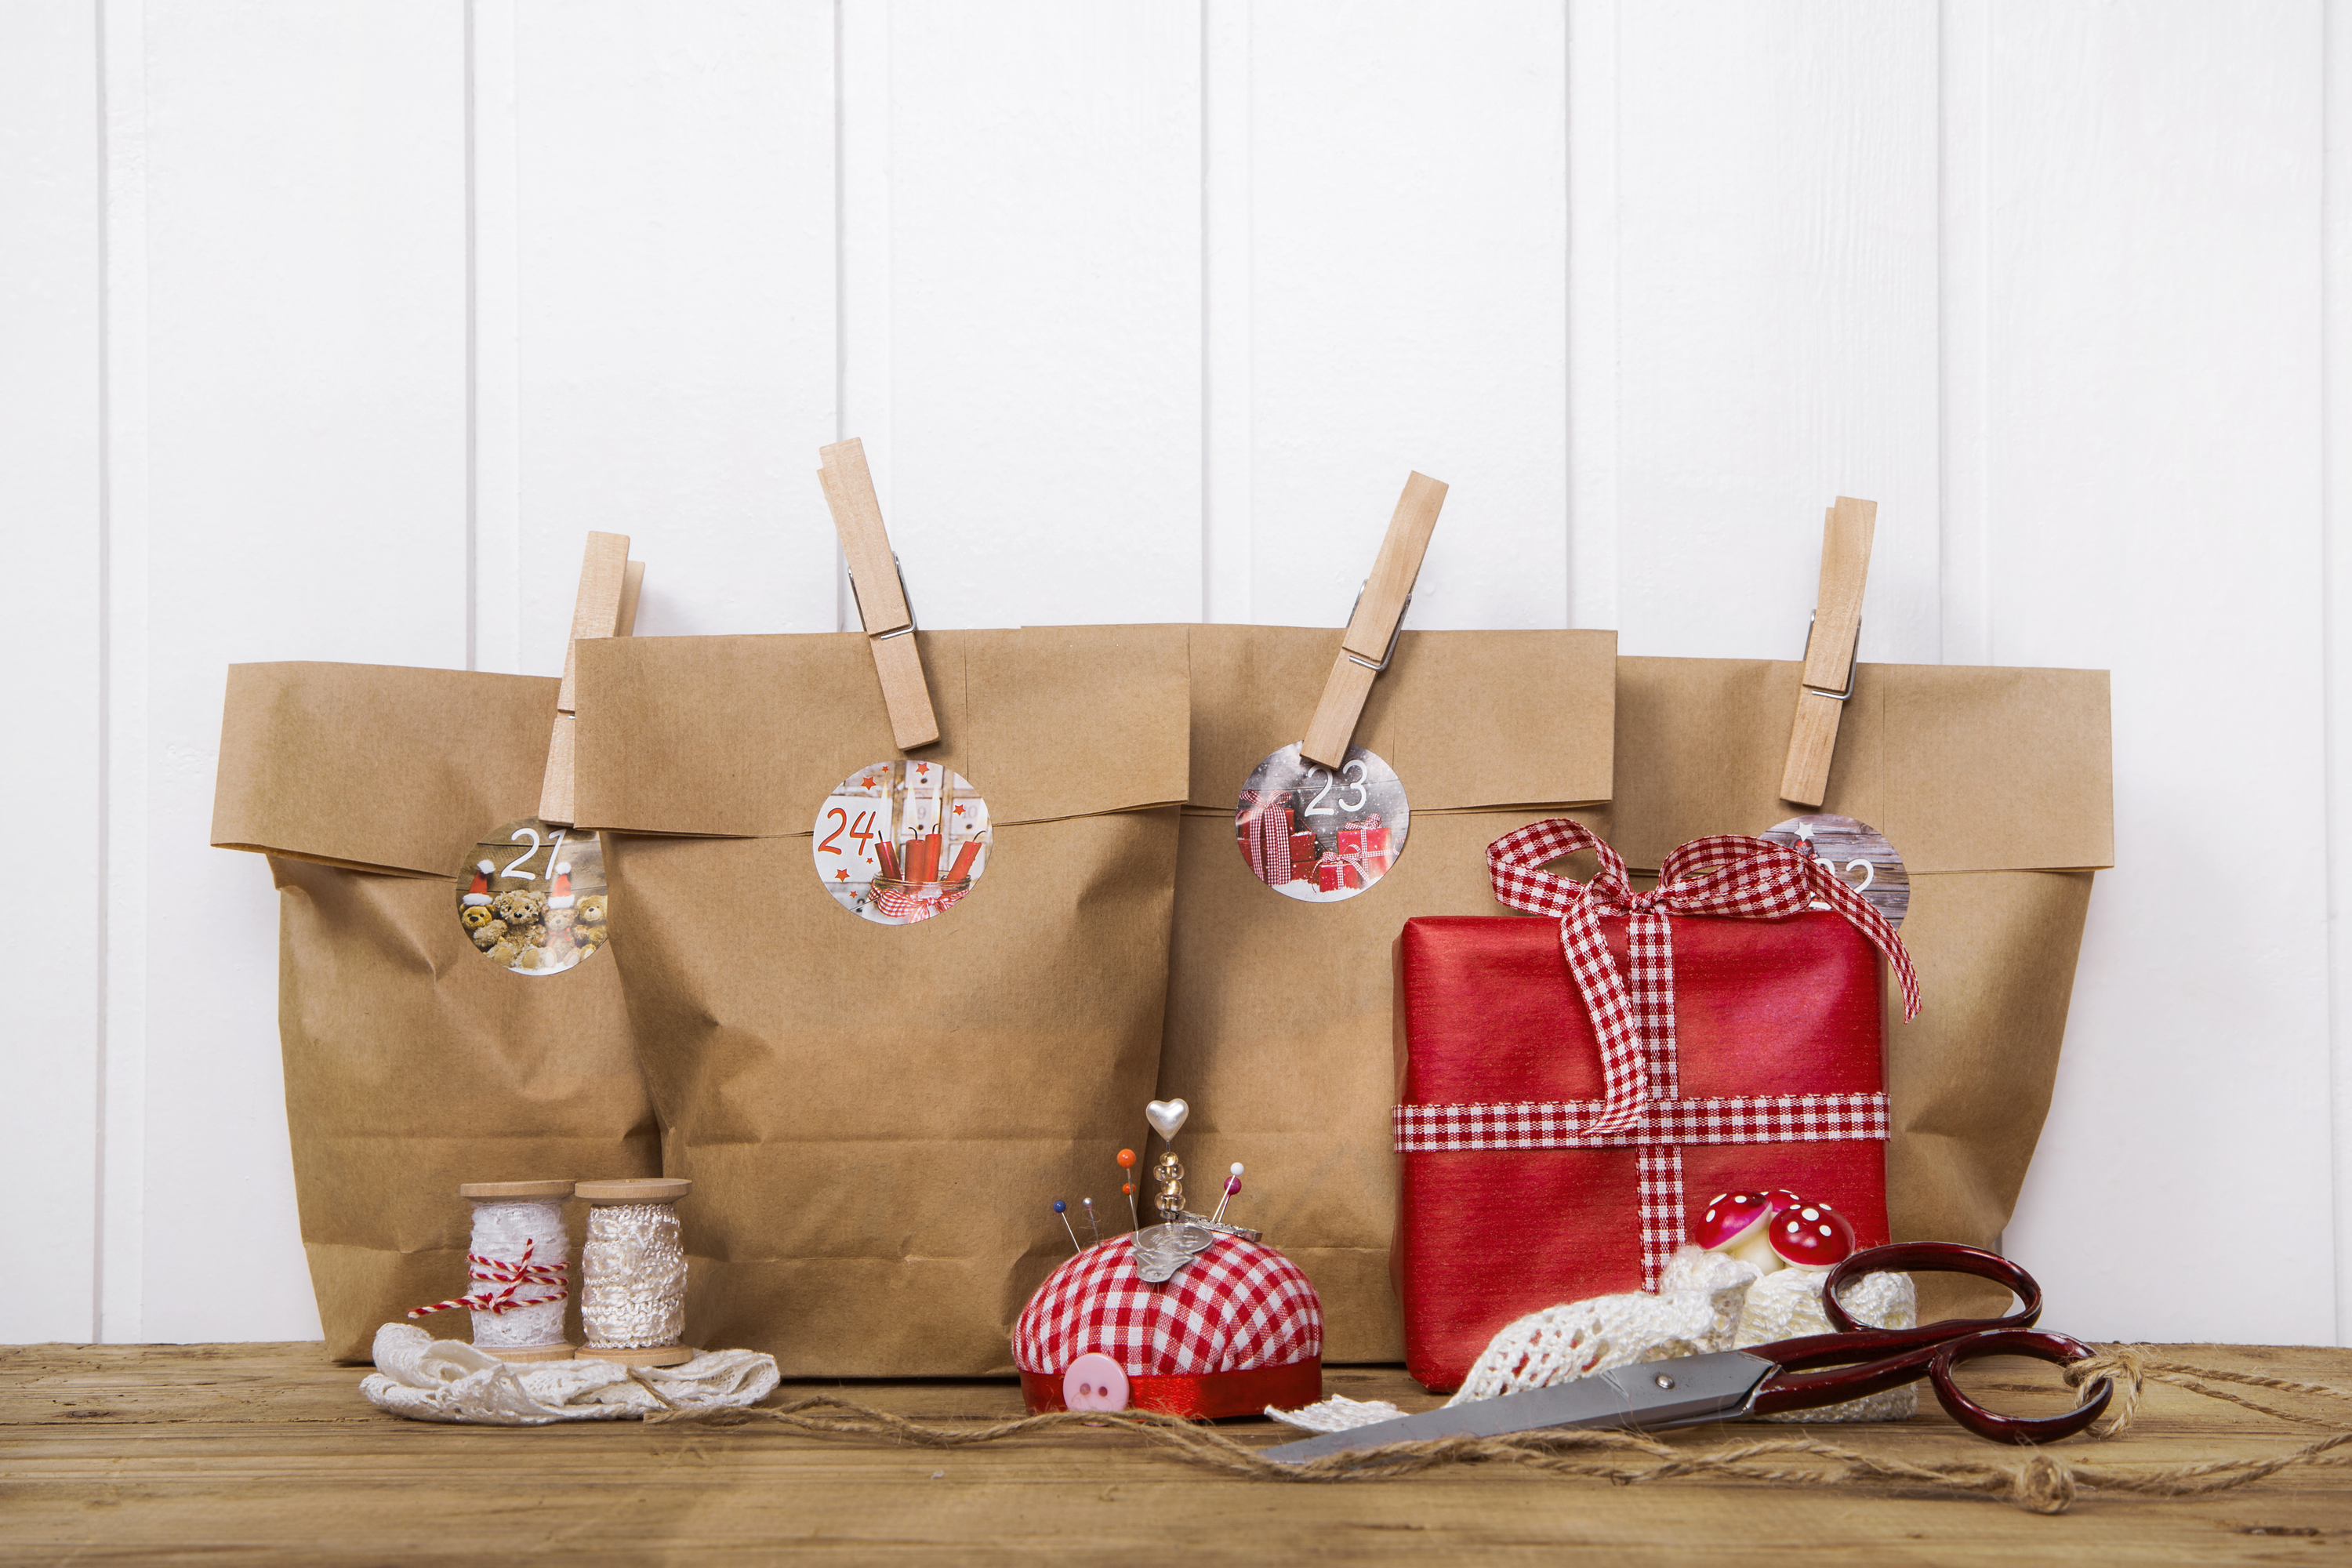 If you're looking for a fun new gift bag idea, look no further. These amazing Christmas paper sack gift bag ideas are so cute and easy to make.